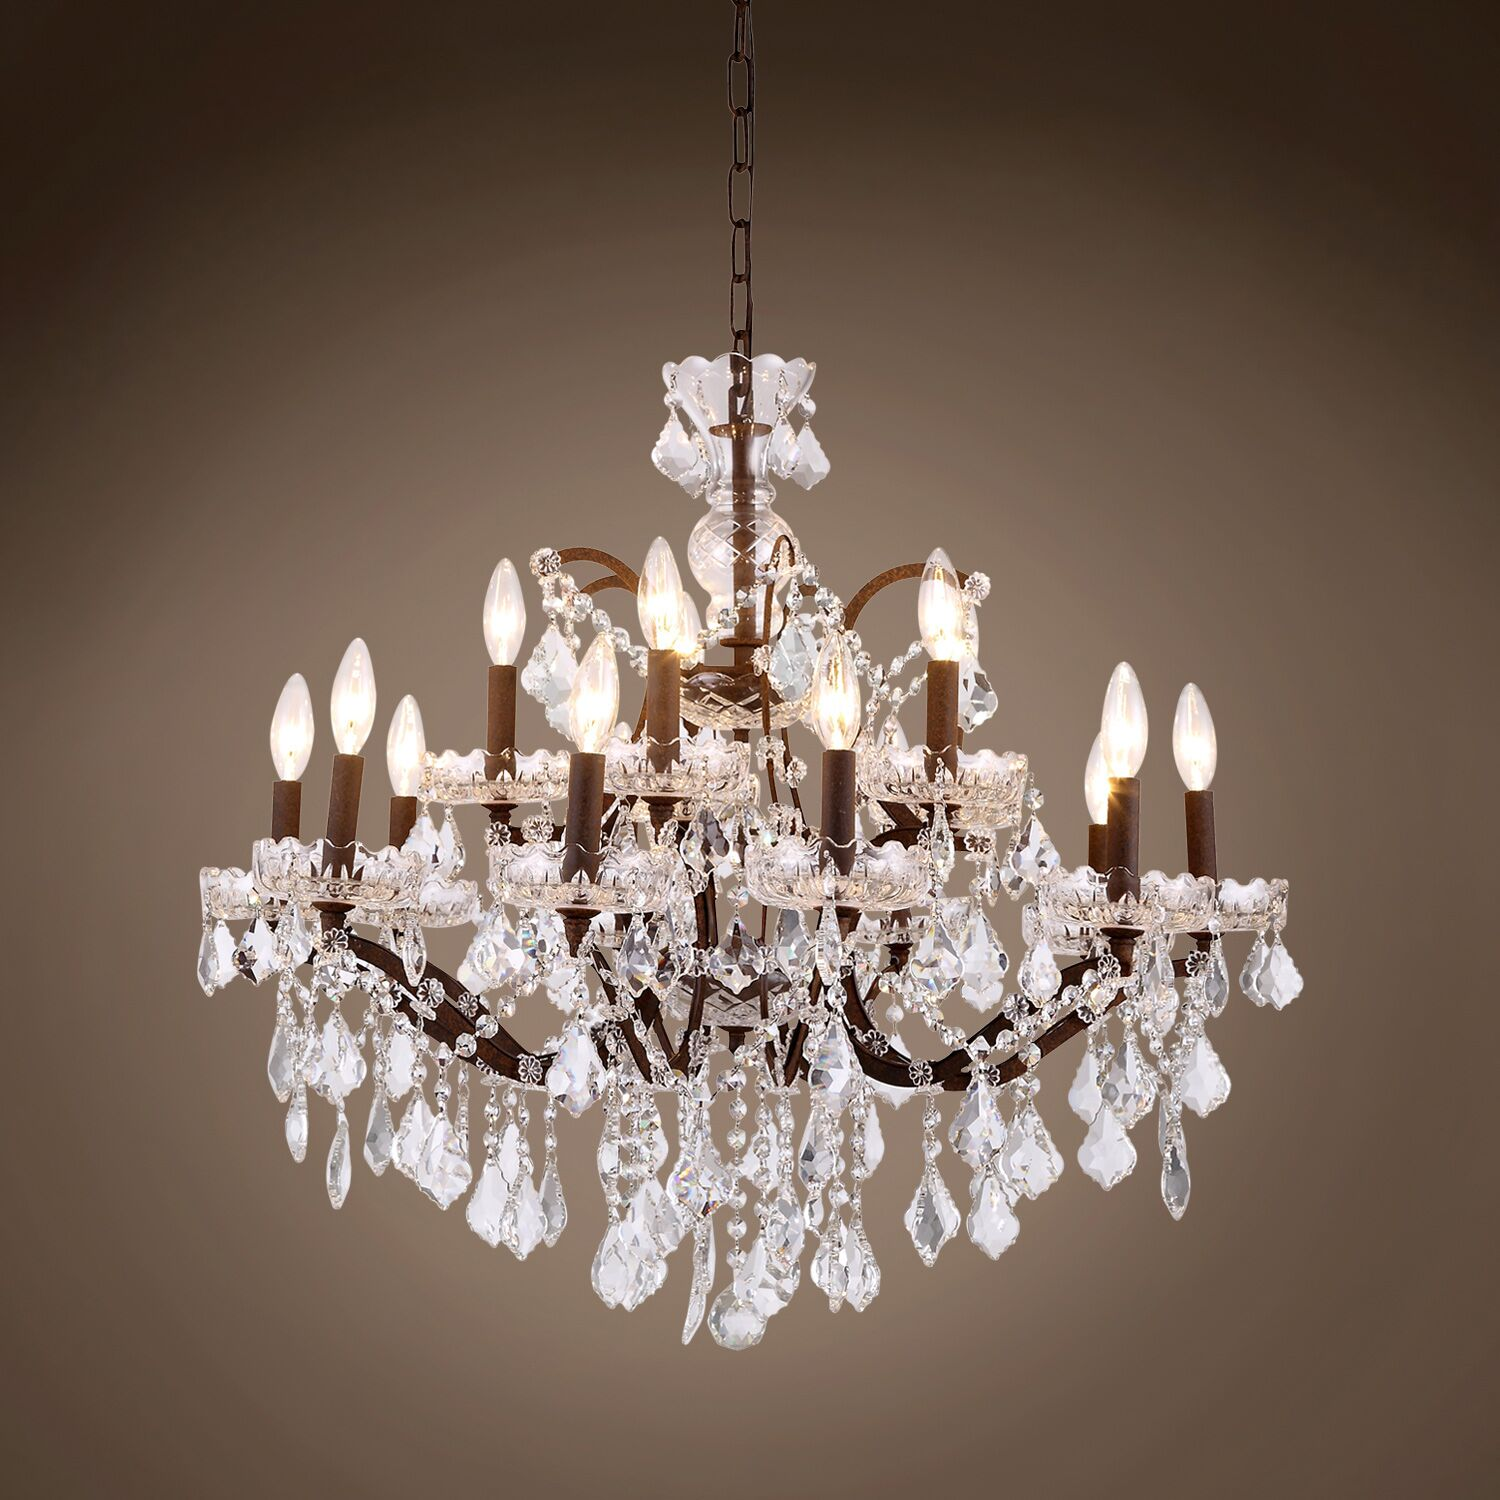 Chantrell 15-Light Chandelier Crystal Color: Clear, Finish: Rustic Iron